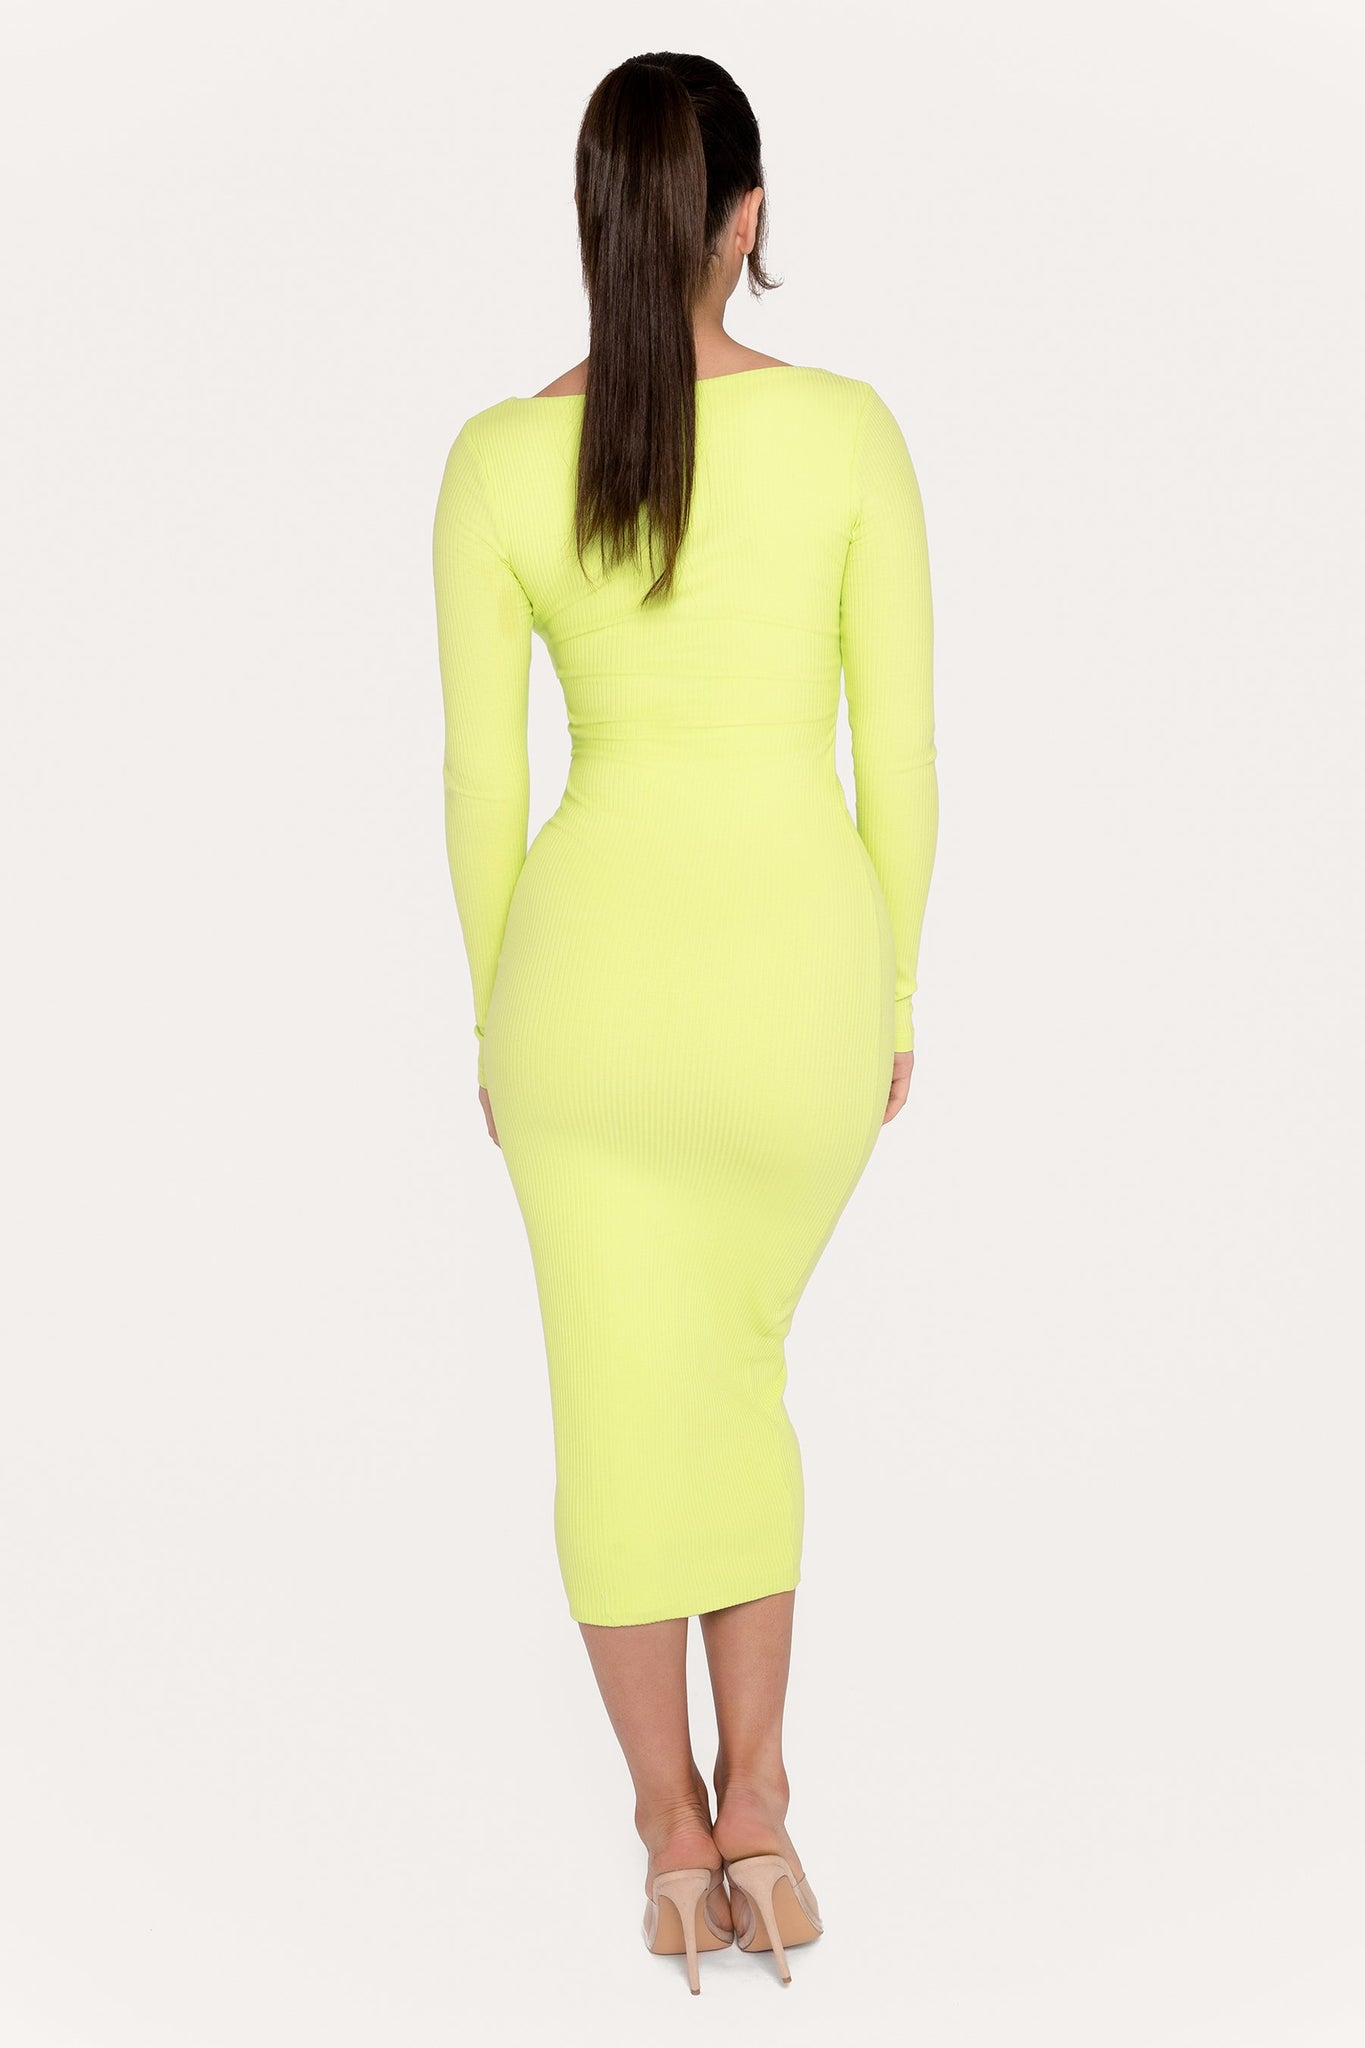 Desirae Long Sleeve Scoop Neck Midi Dress - Lime Green - MESHKI